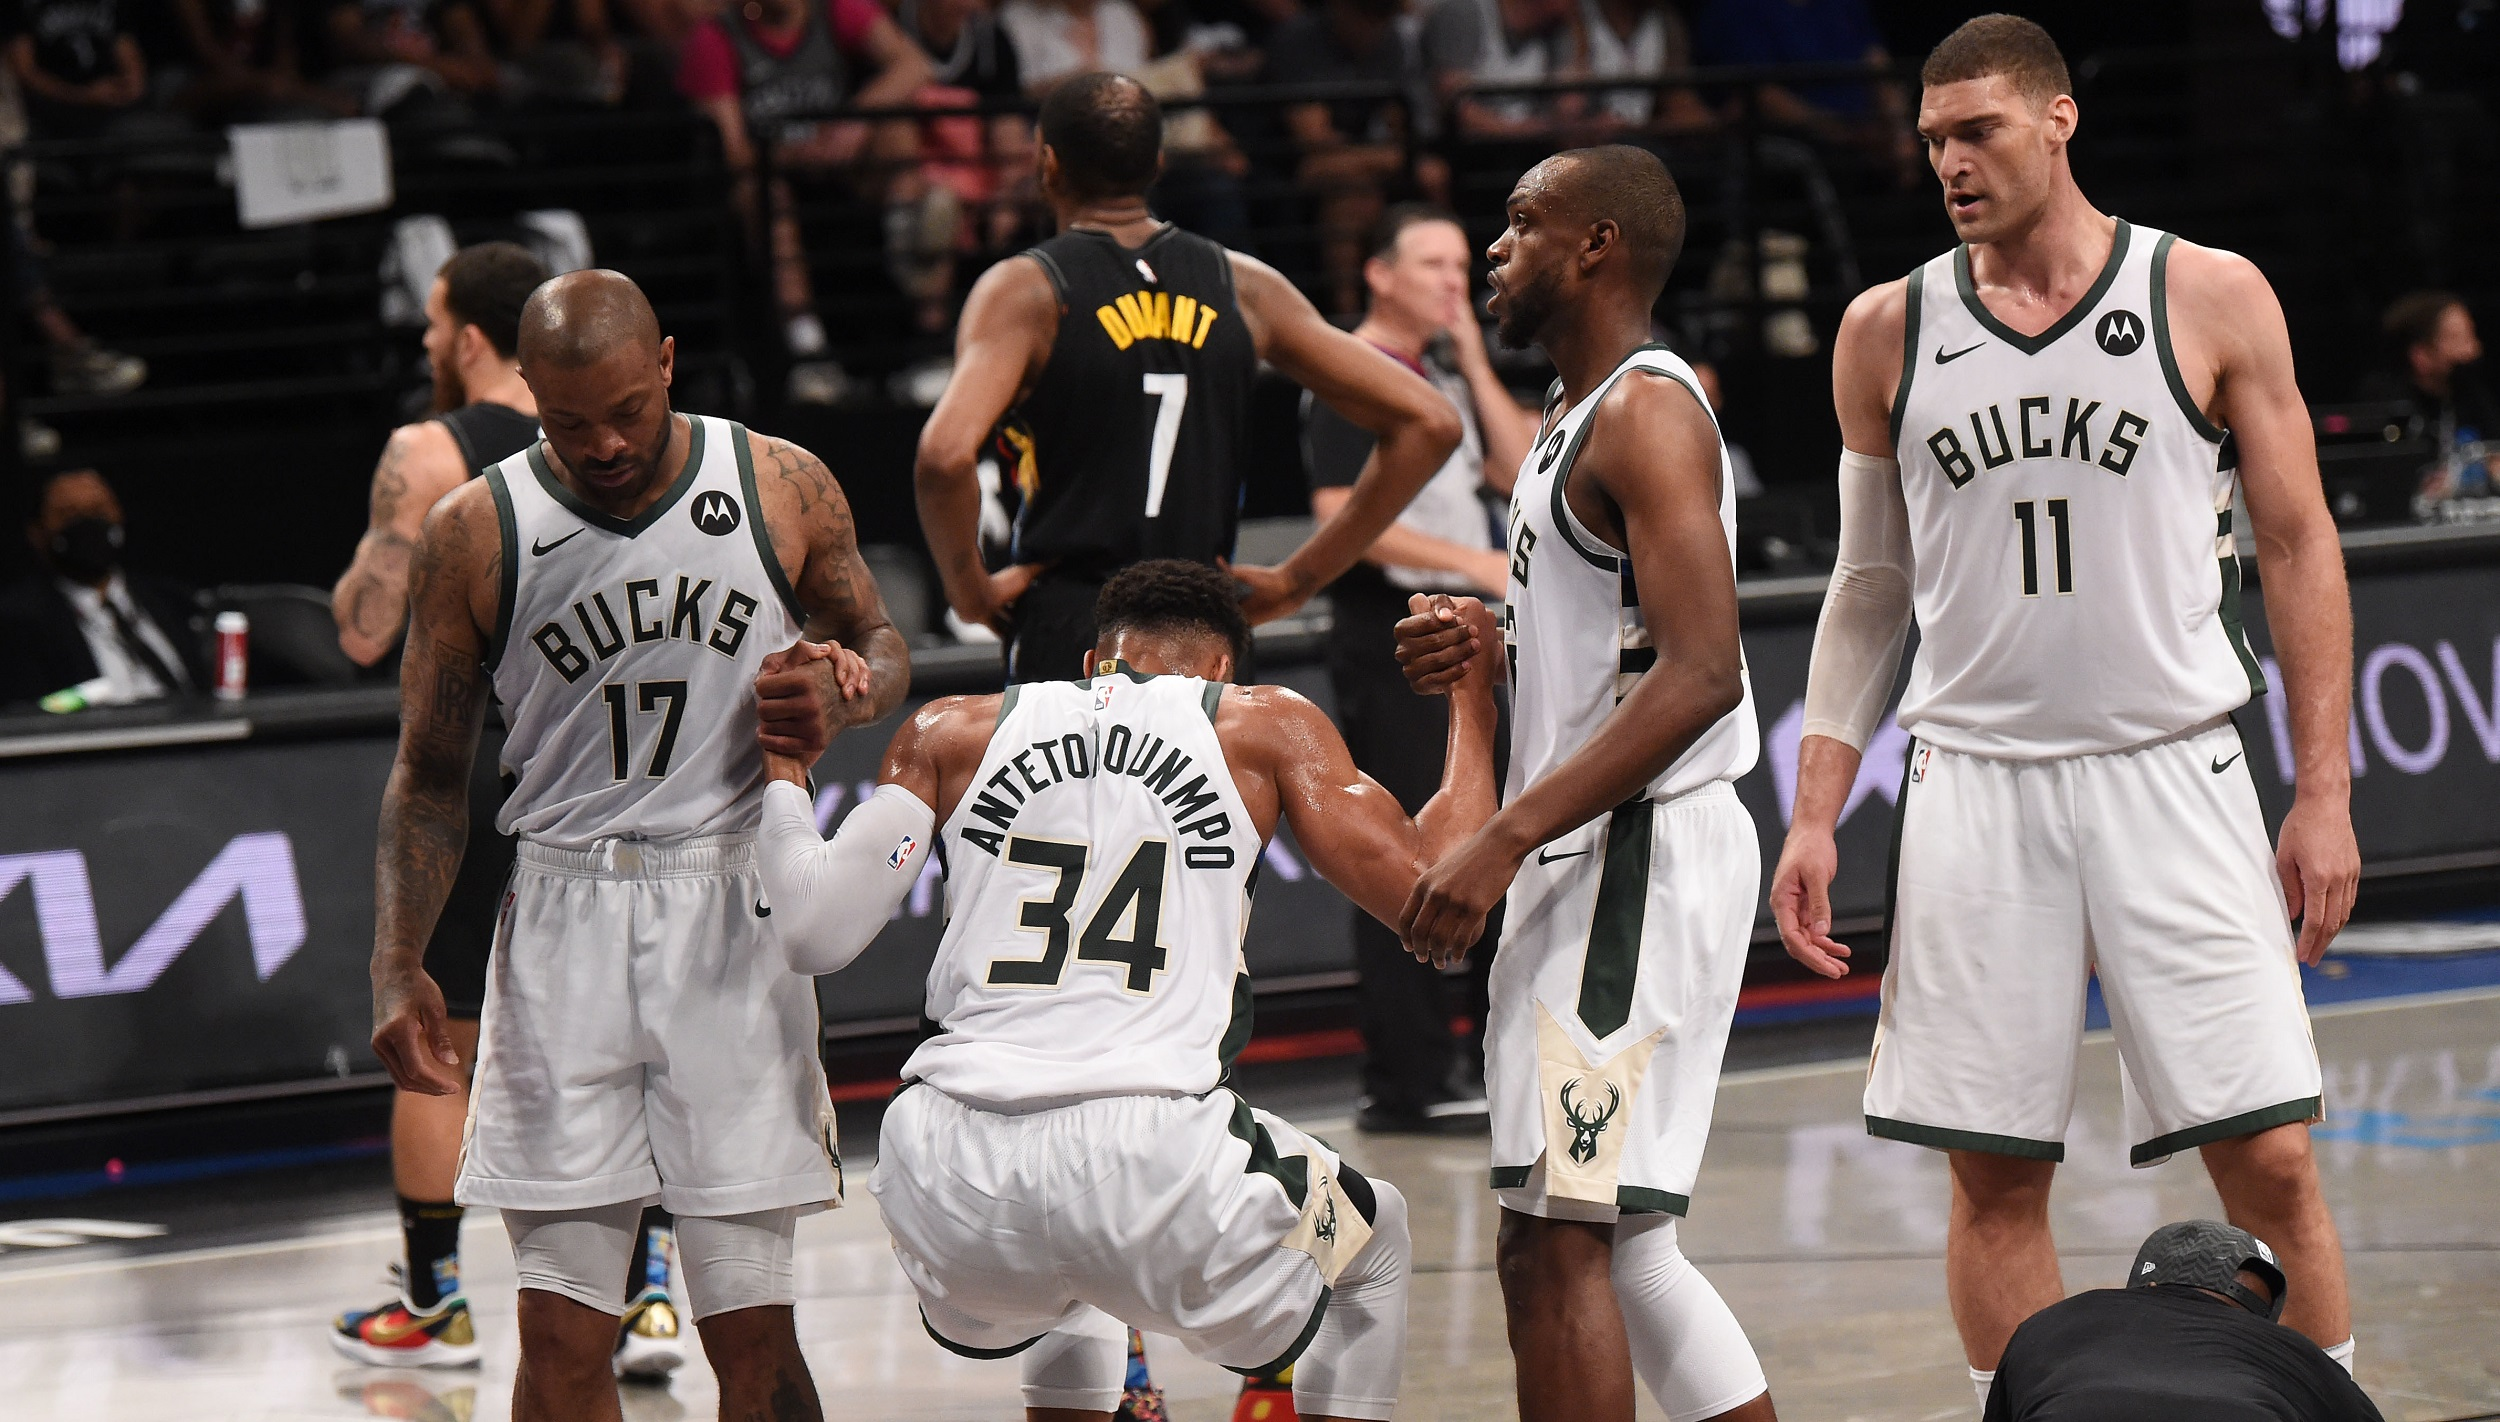 Milwaukee Bucks put up no resistance in Game 2 rout